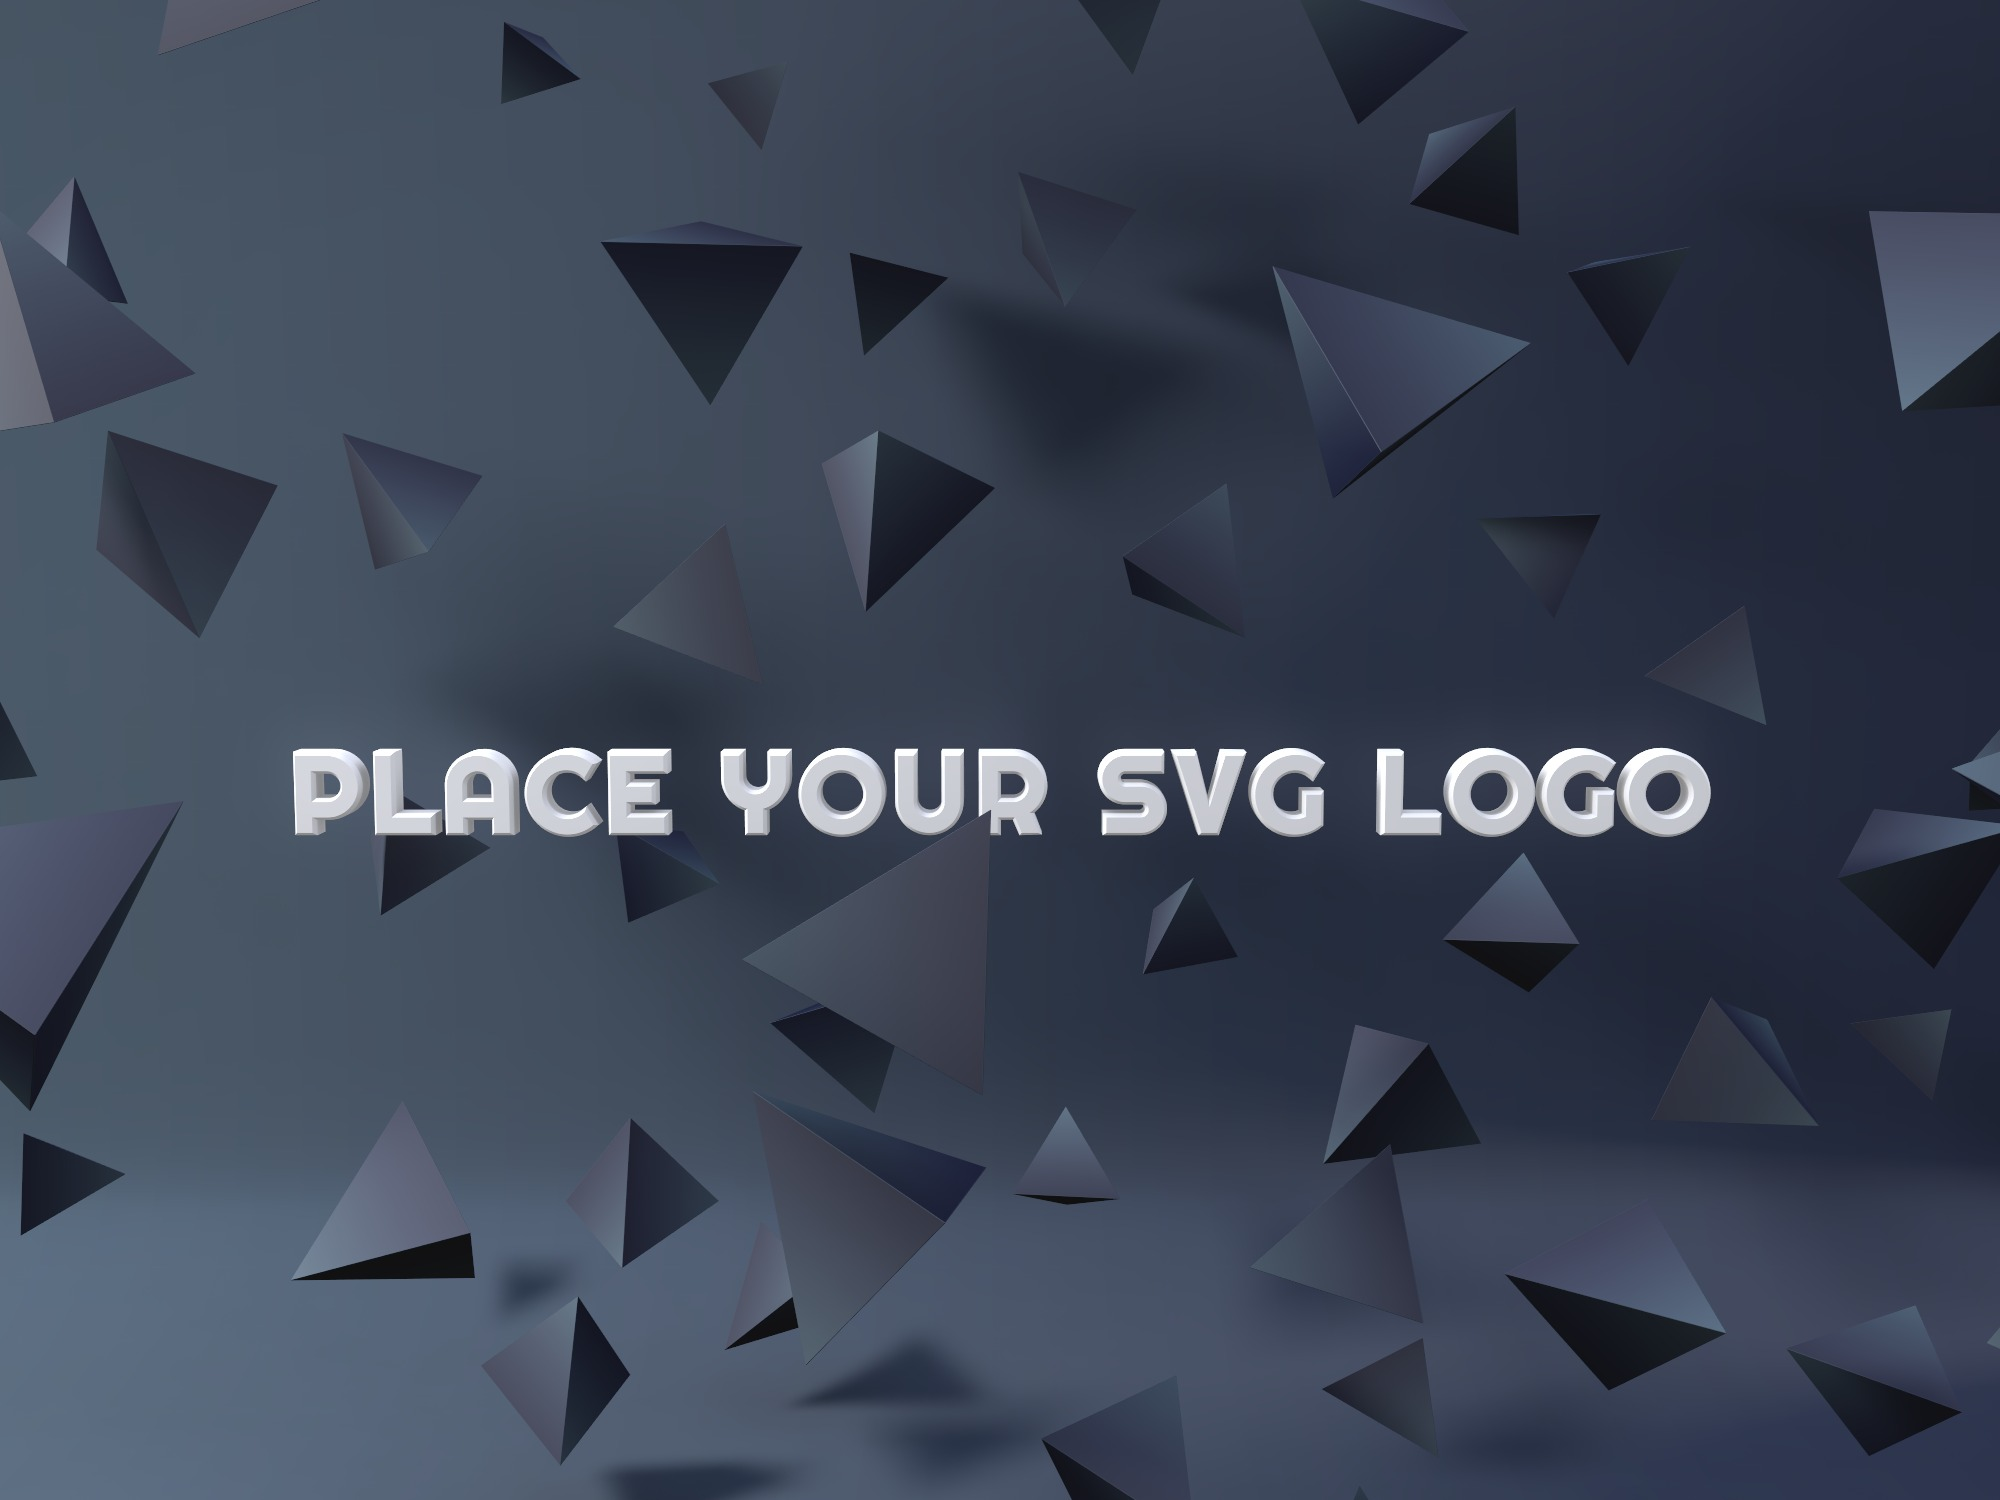 Create a 3D logo - drag and drop your design - 3D design by Vectary templates Jul 18, 2018